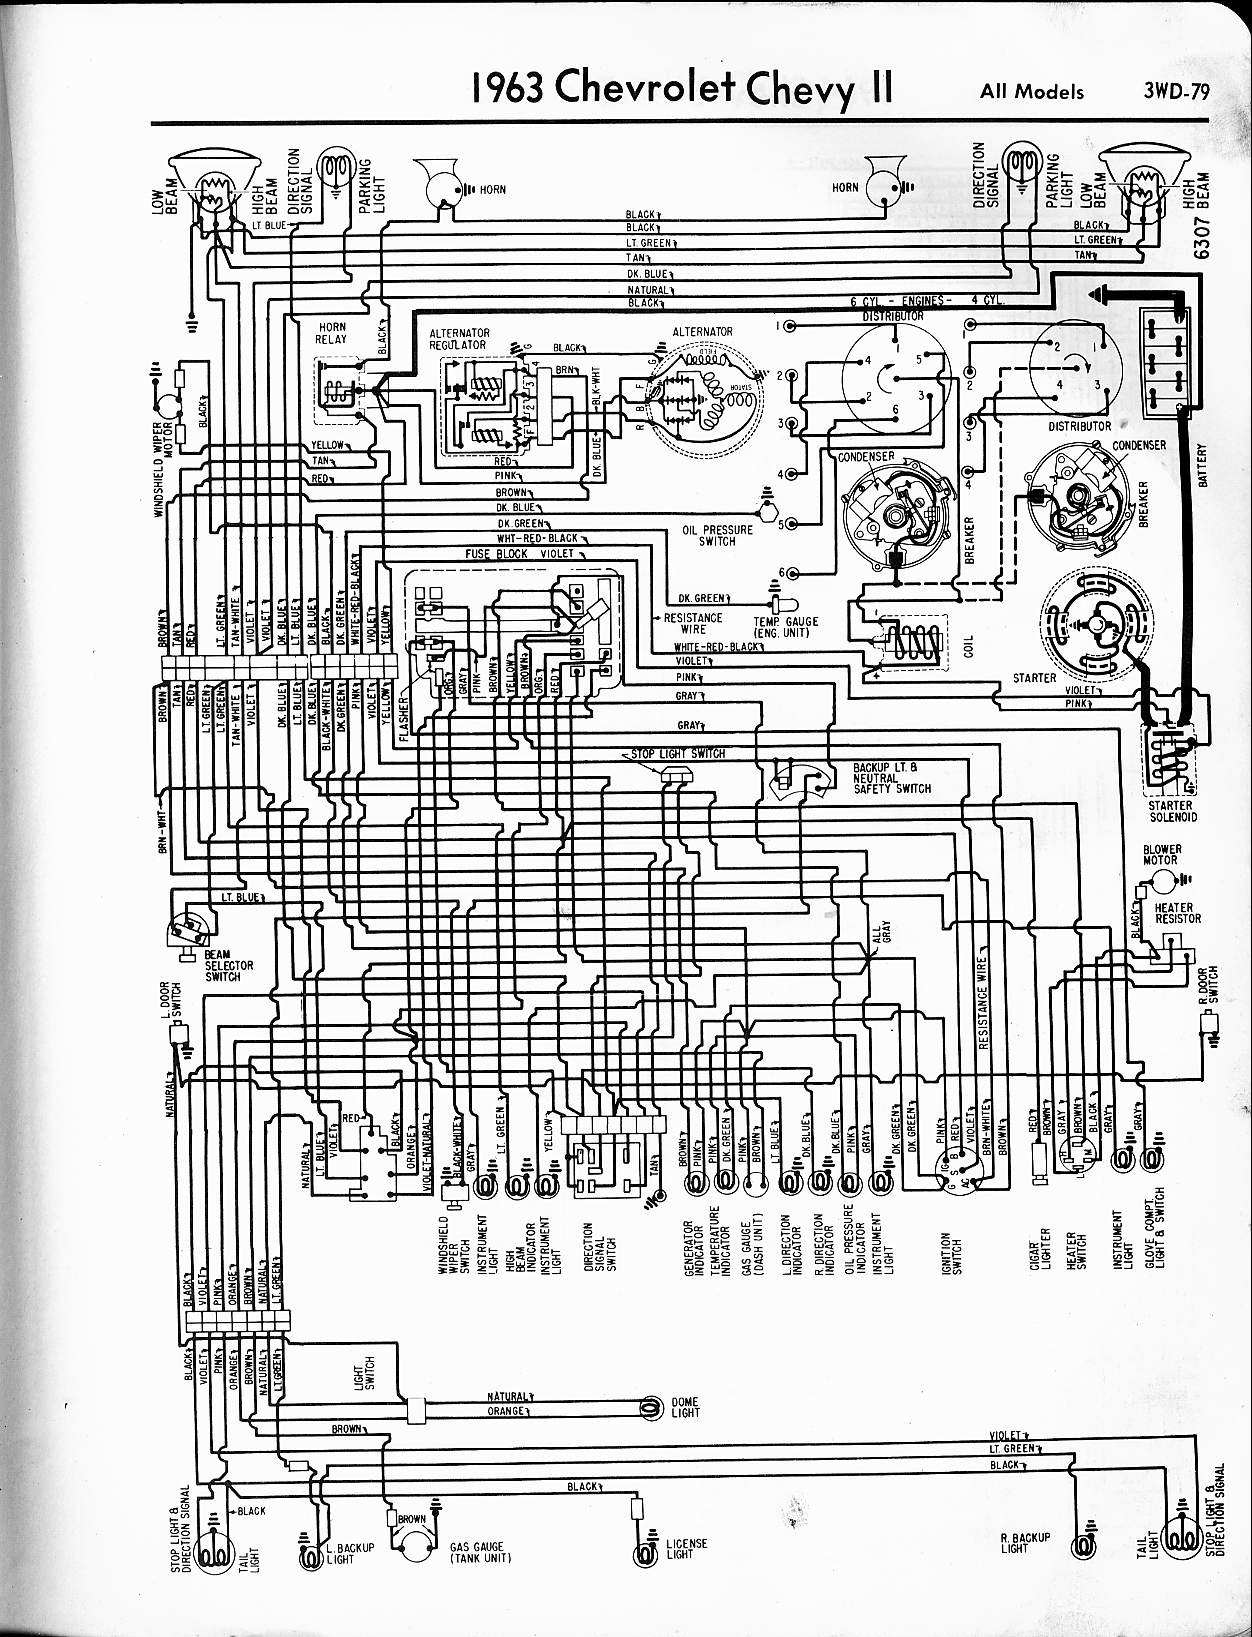 MWireChev63_3WD 079 1963 c10 pickup wiring diagram pdf chevy wiring diagrams \u2022 free 1967 gmc pickup wiring diagram at panicattacktreatment.co